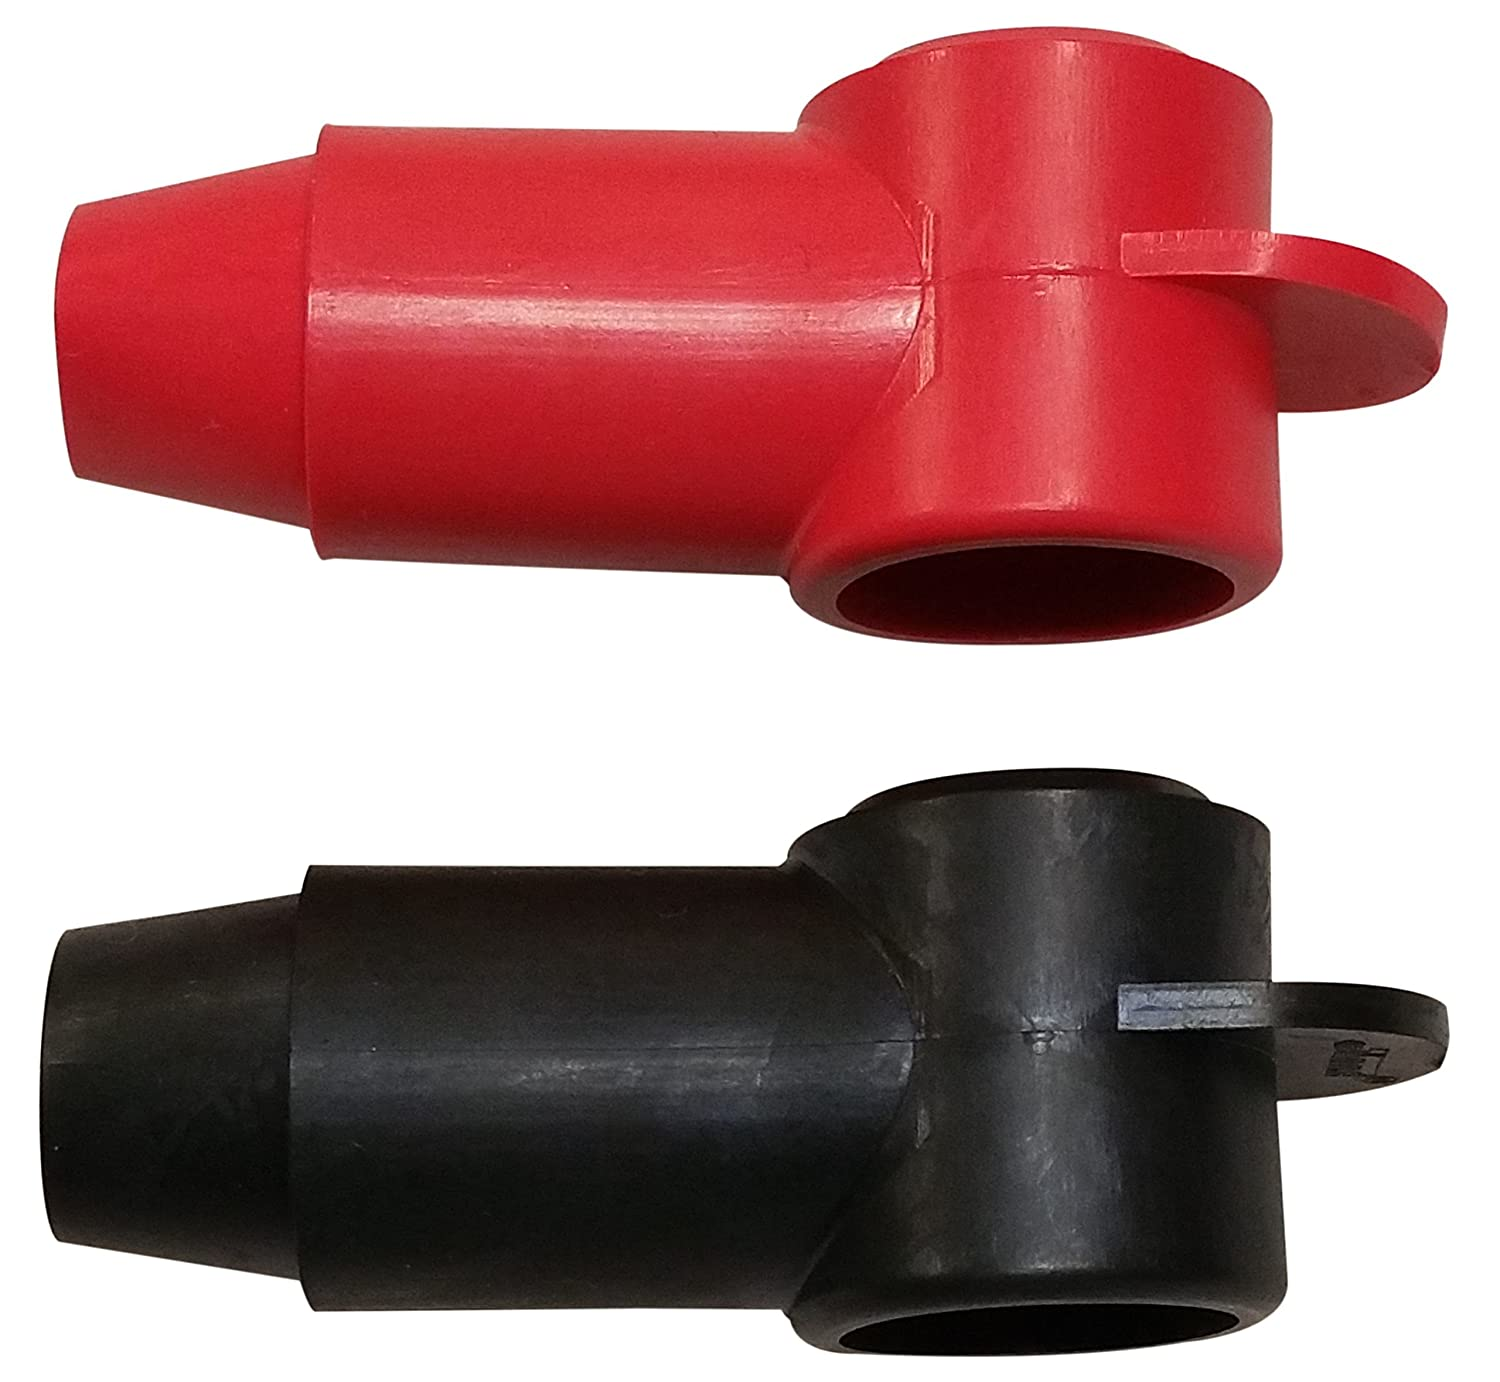 "(rot & Black) 3/8"" Stud Terminal Cover - Electrical Battery Connection Insulator (2 Pack)"